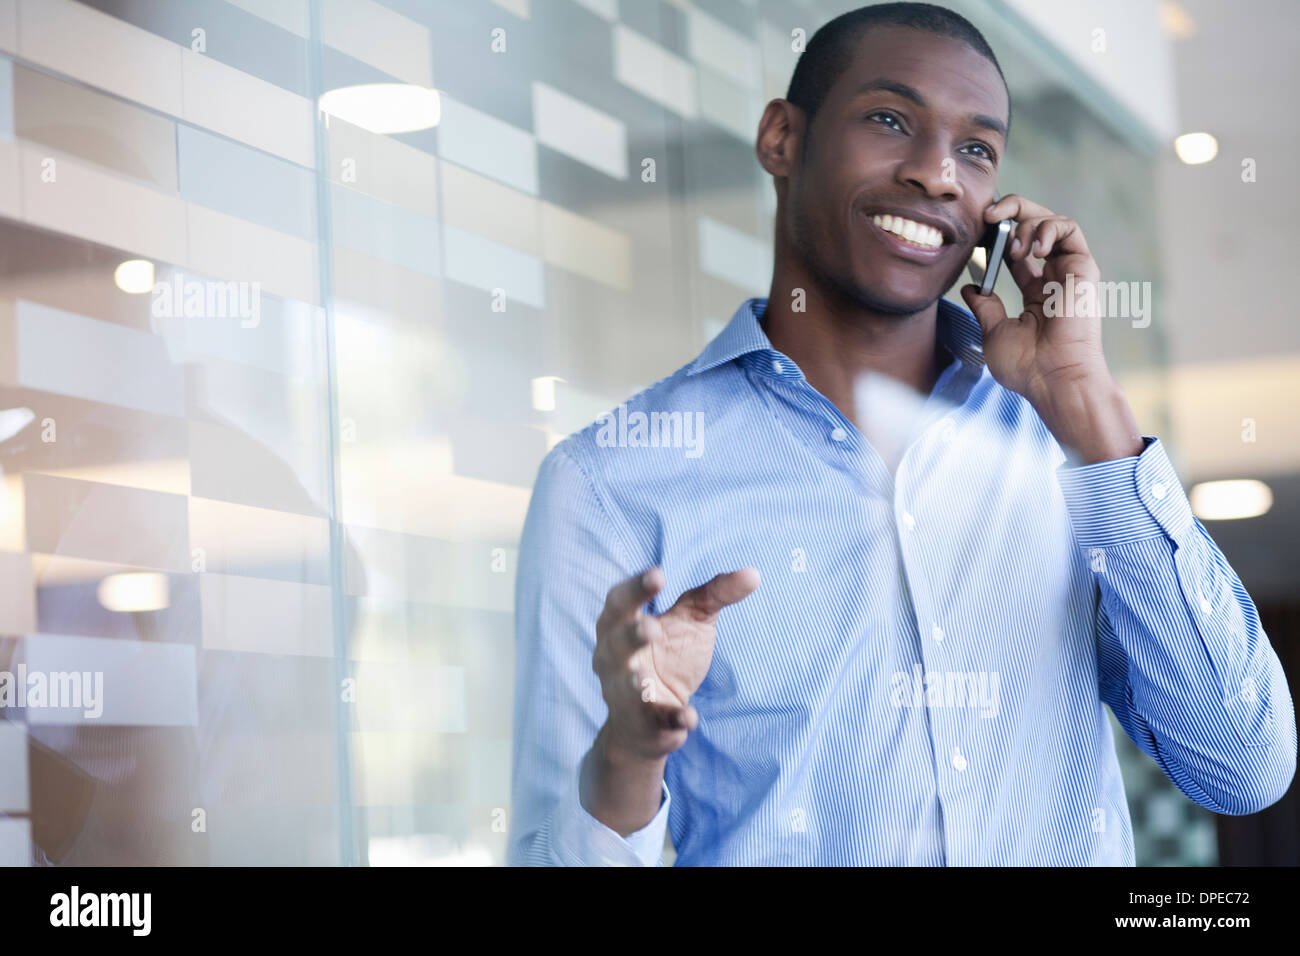 Businessman on telephone call - Stock Image